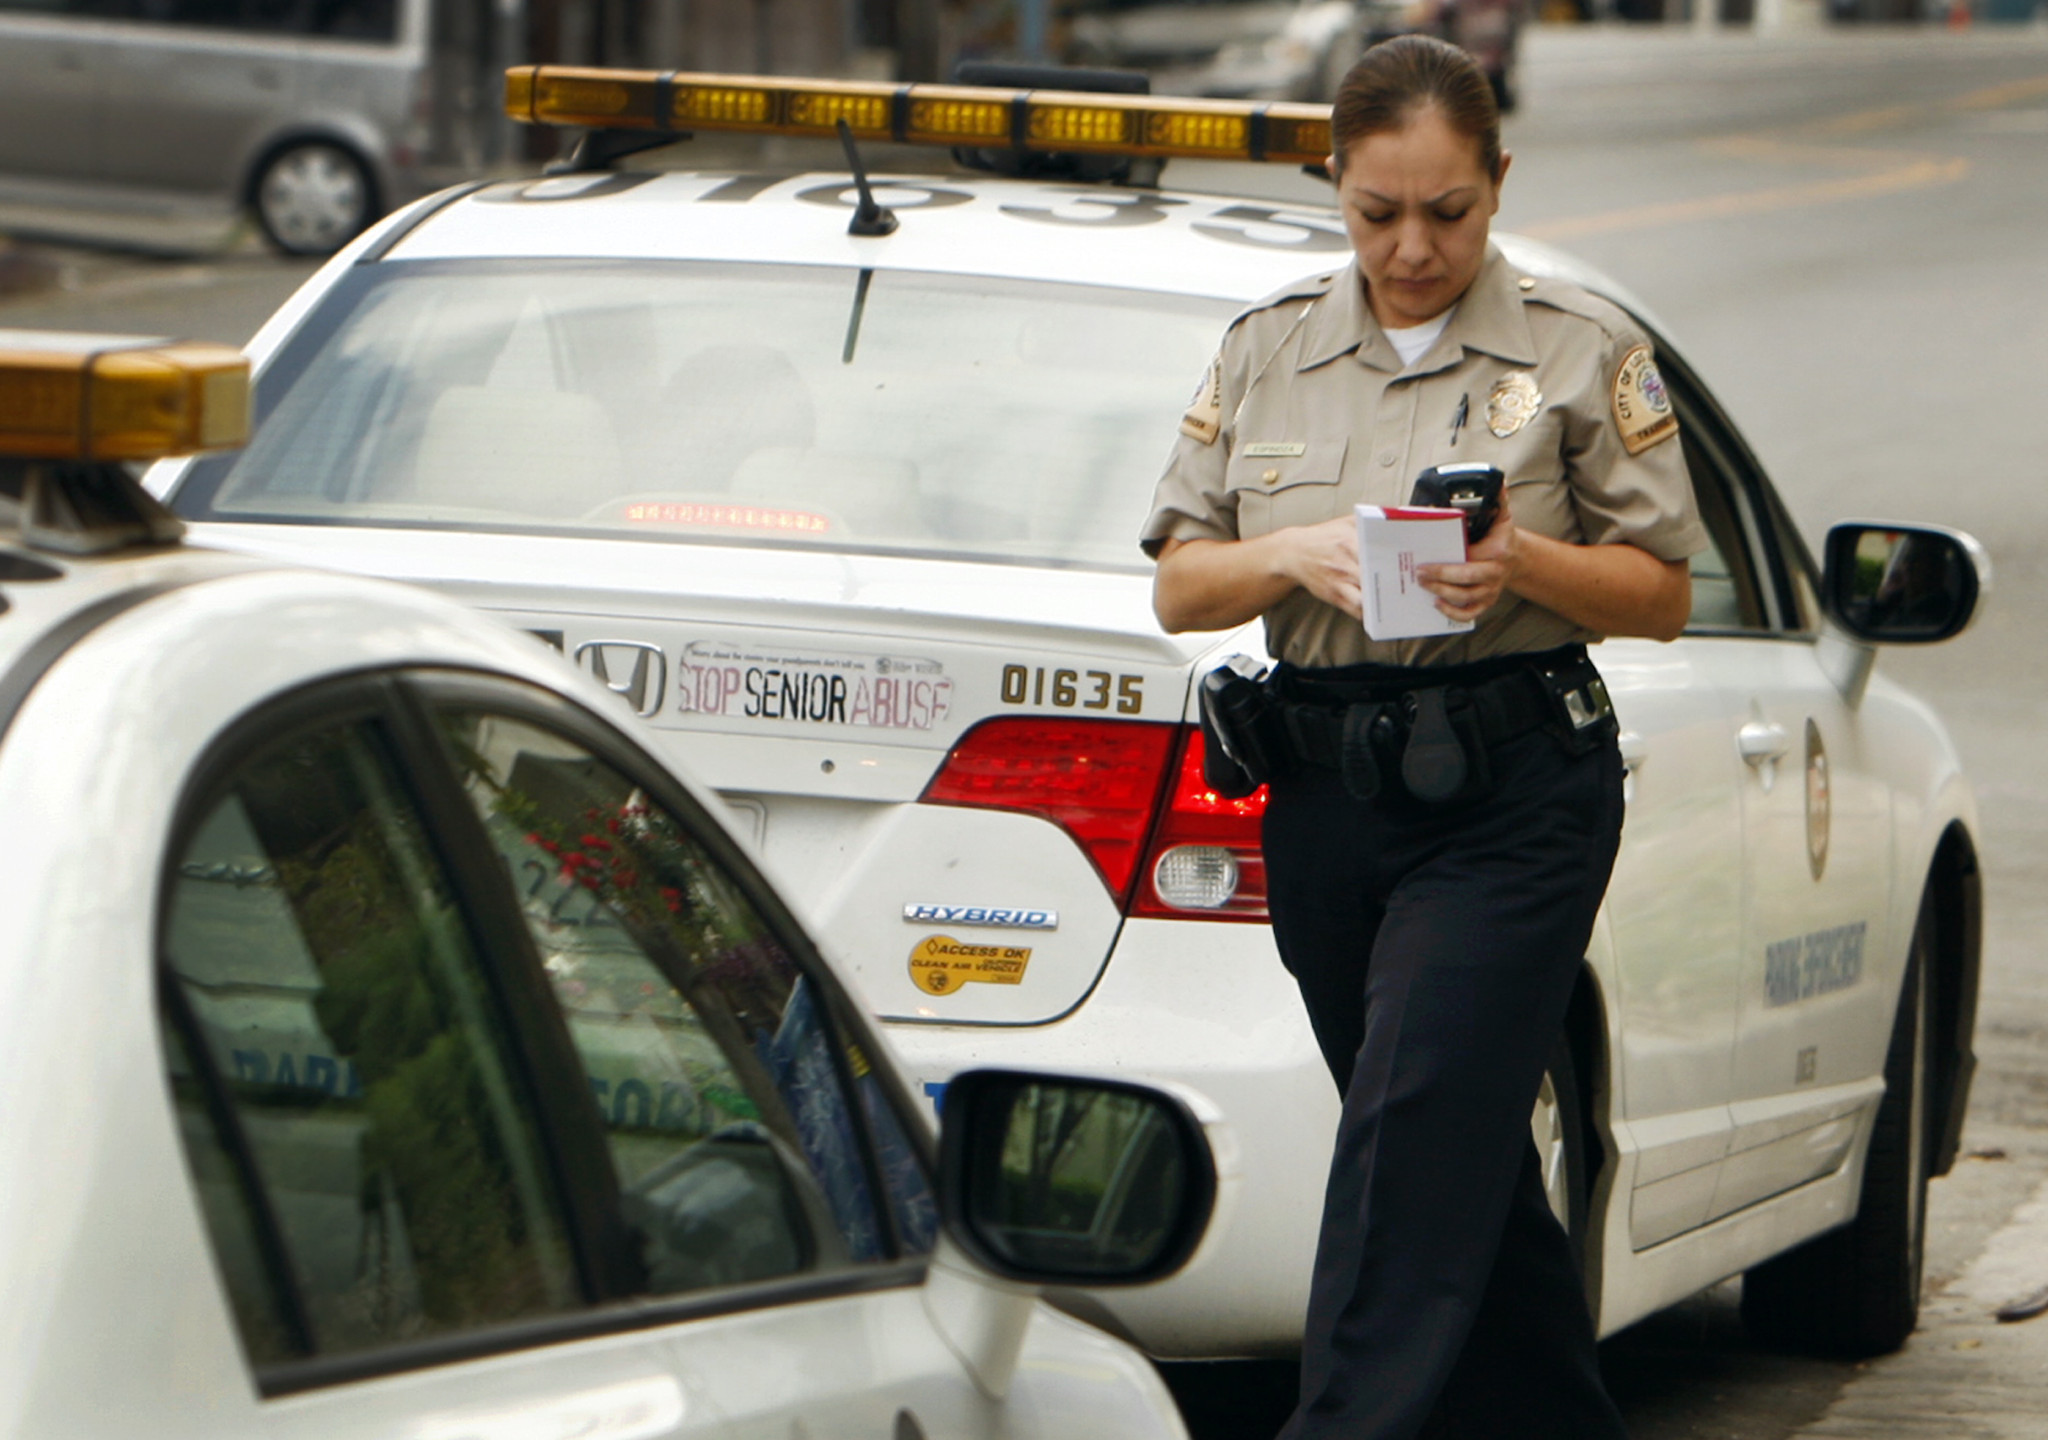 Nyc Traffic Ticket >> What should a parking ticket in L.A. cost? - LA Times